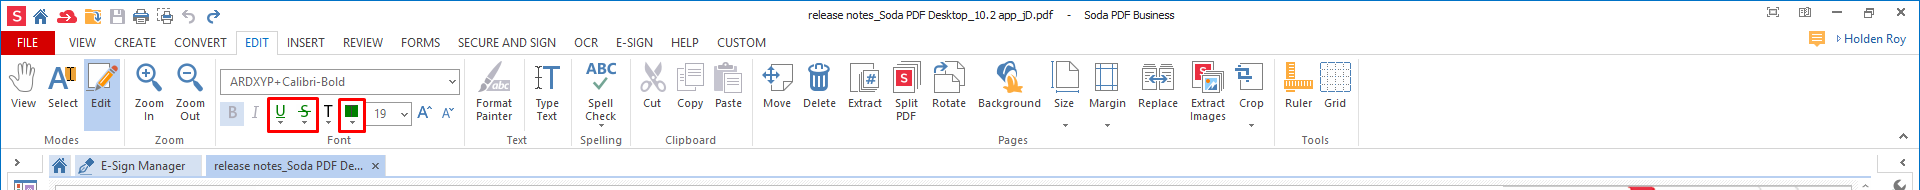 How to Use the Format Painter for PDF | Soda PDF Blog